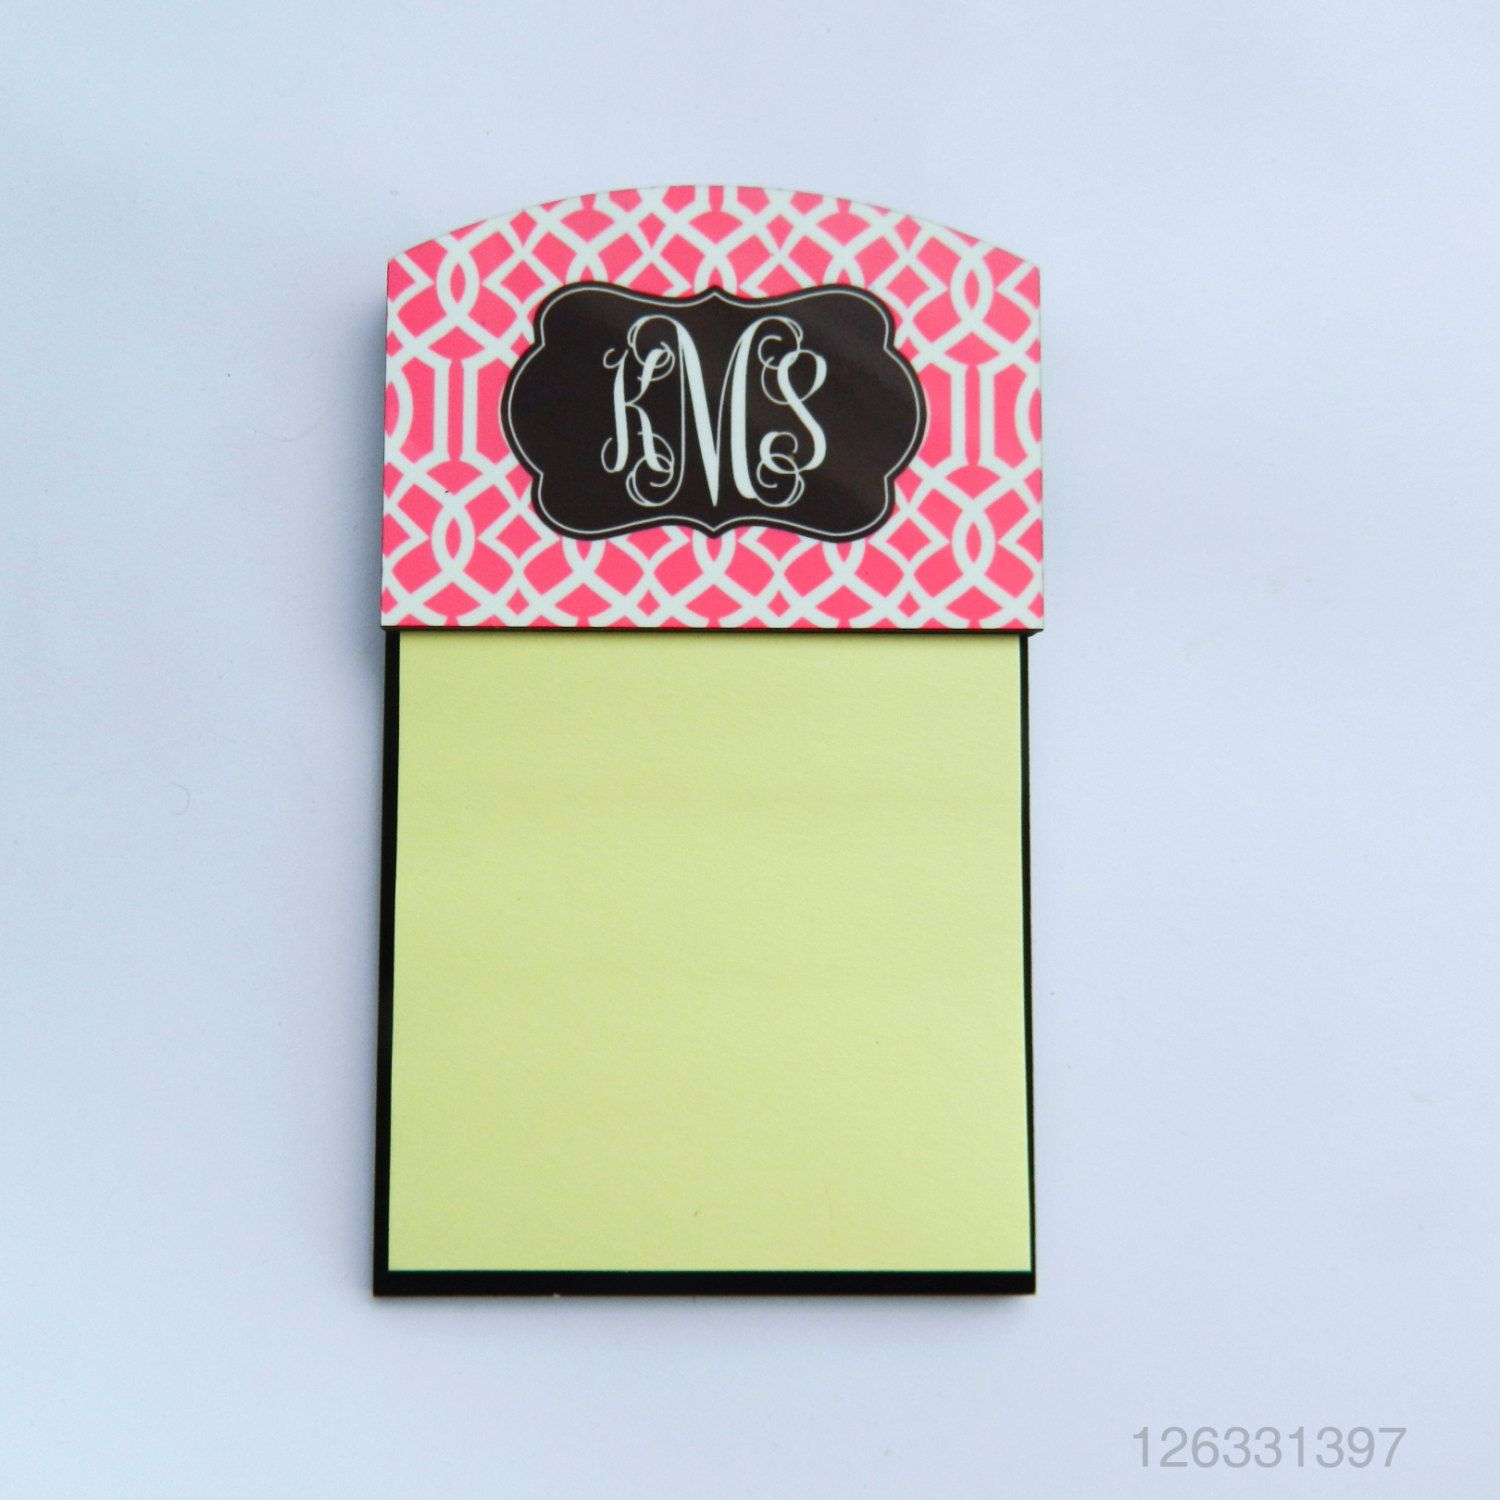 Monogram Sticky Note Holder Personalized Repostitionable Etsy Custom Sticky Notes Personalized Sticky Notes Sticky Notes Post it note holder template